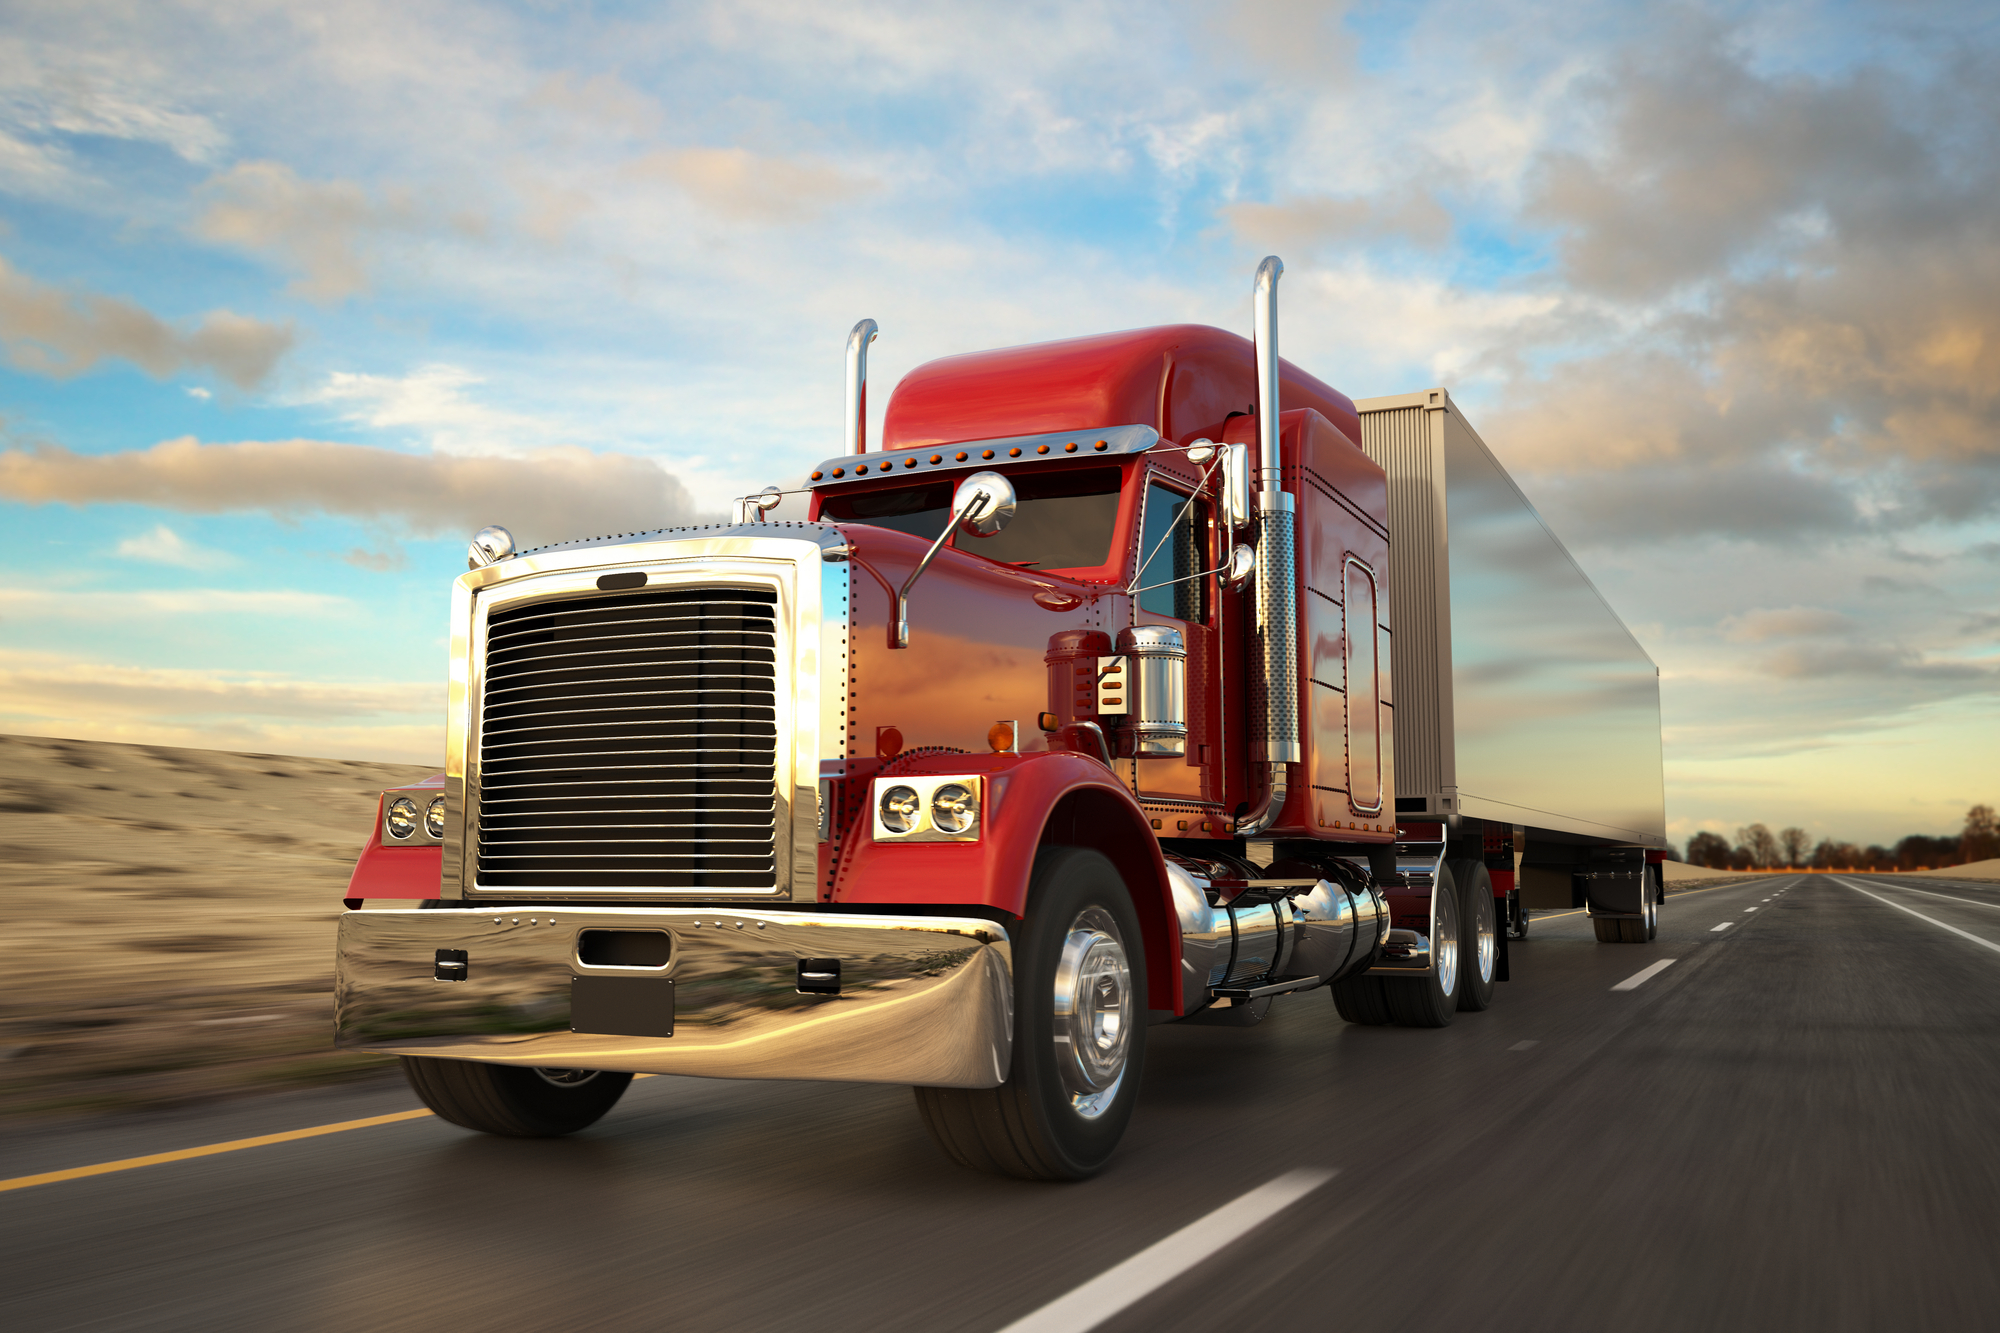 A red long haul truck on the road